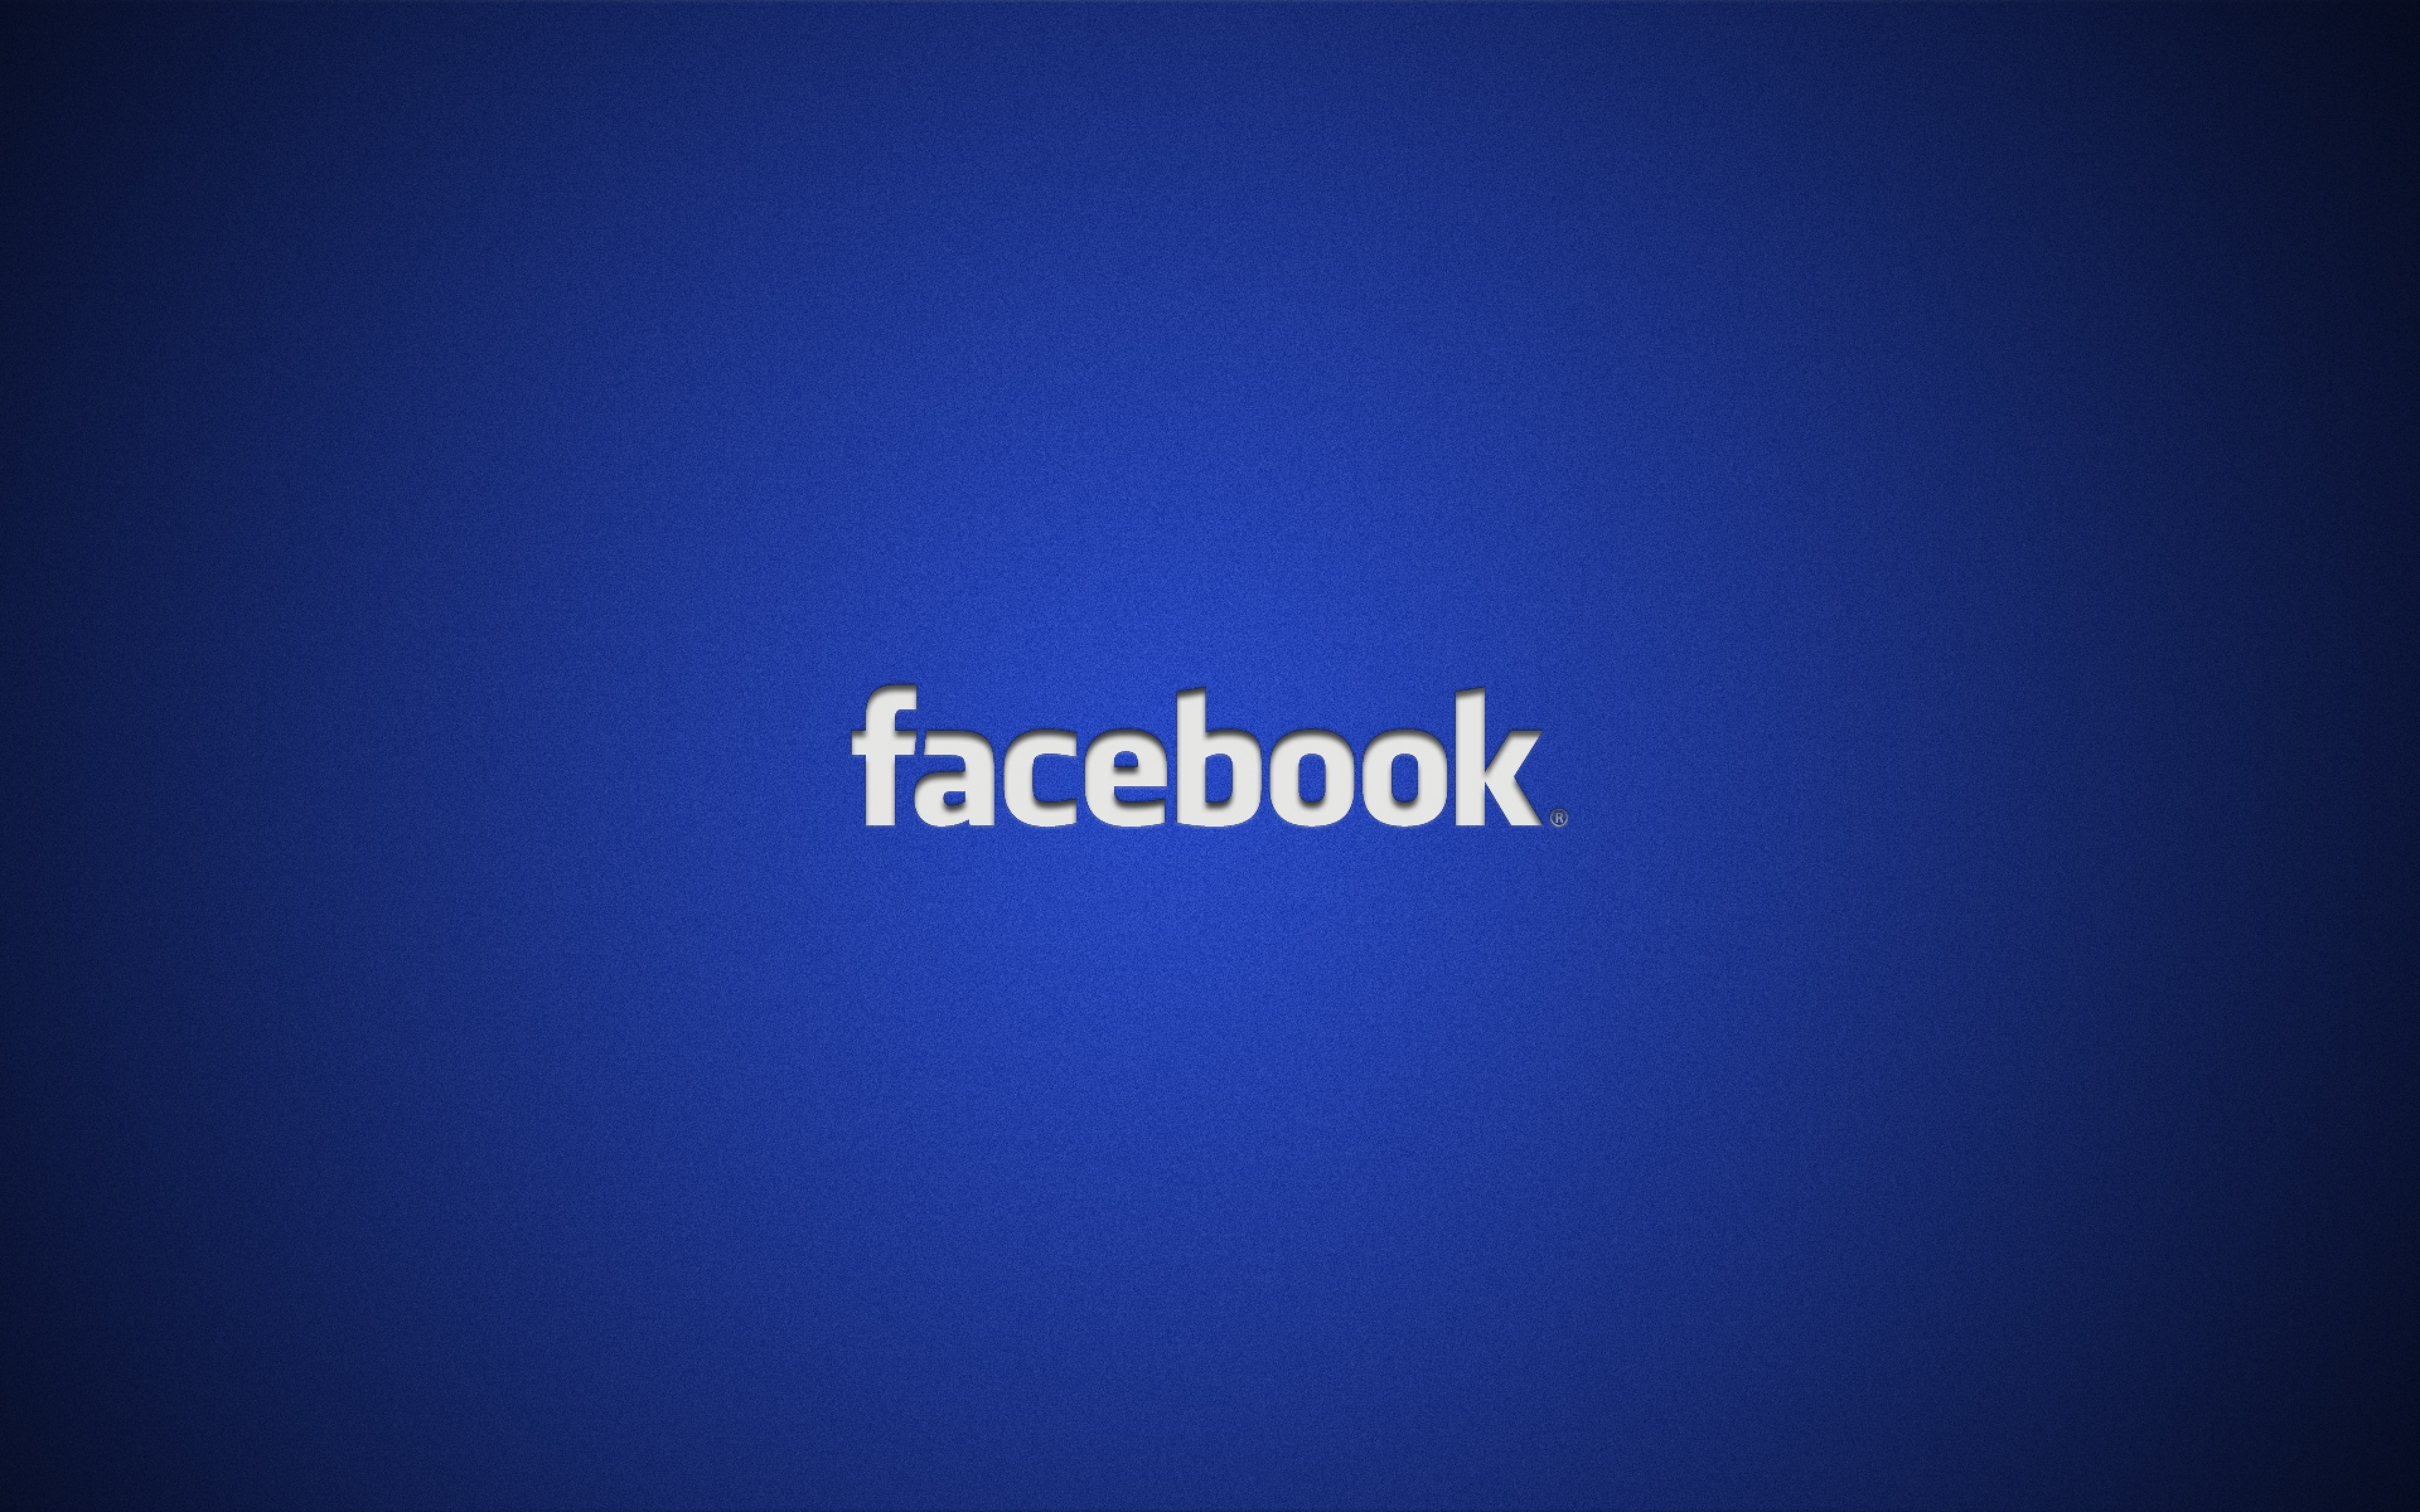 facebook logo widescreen hd wallpaper 62725